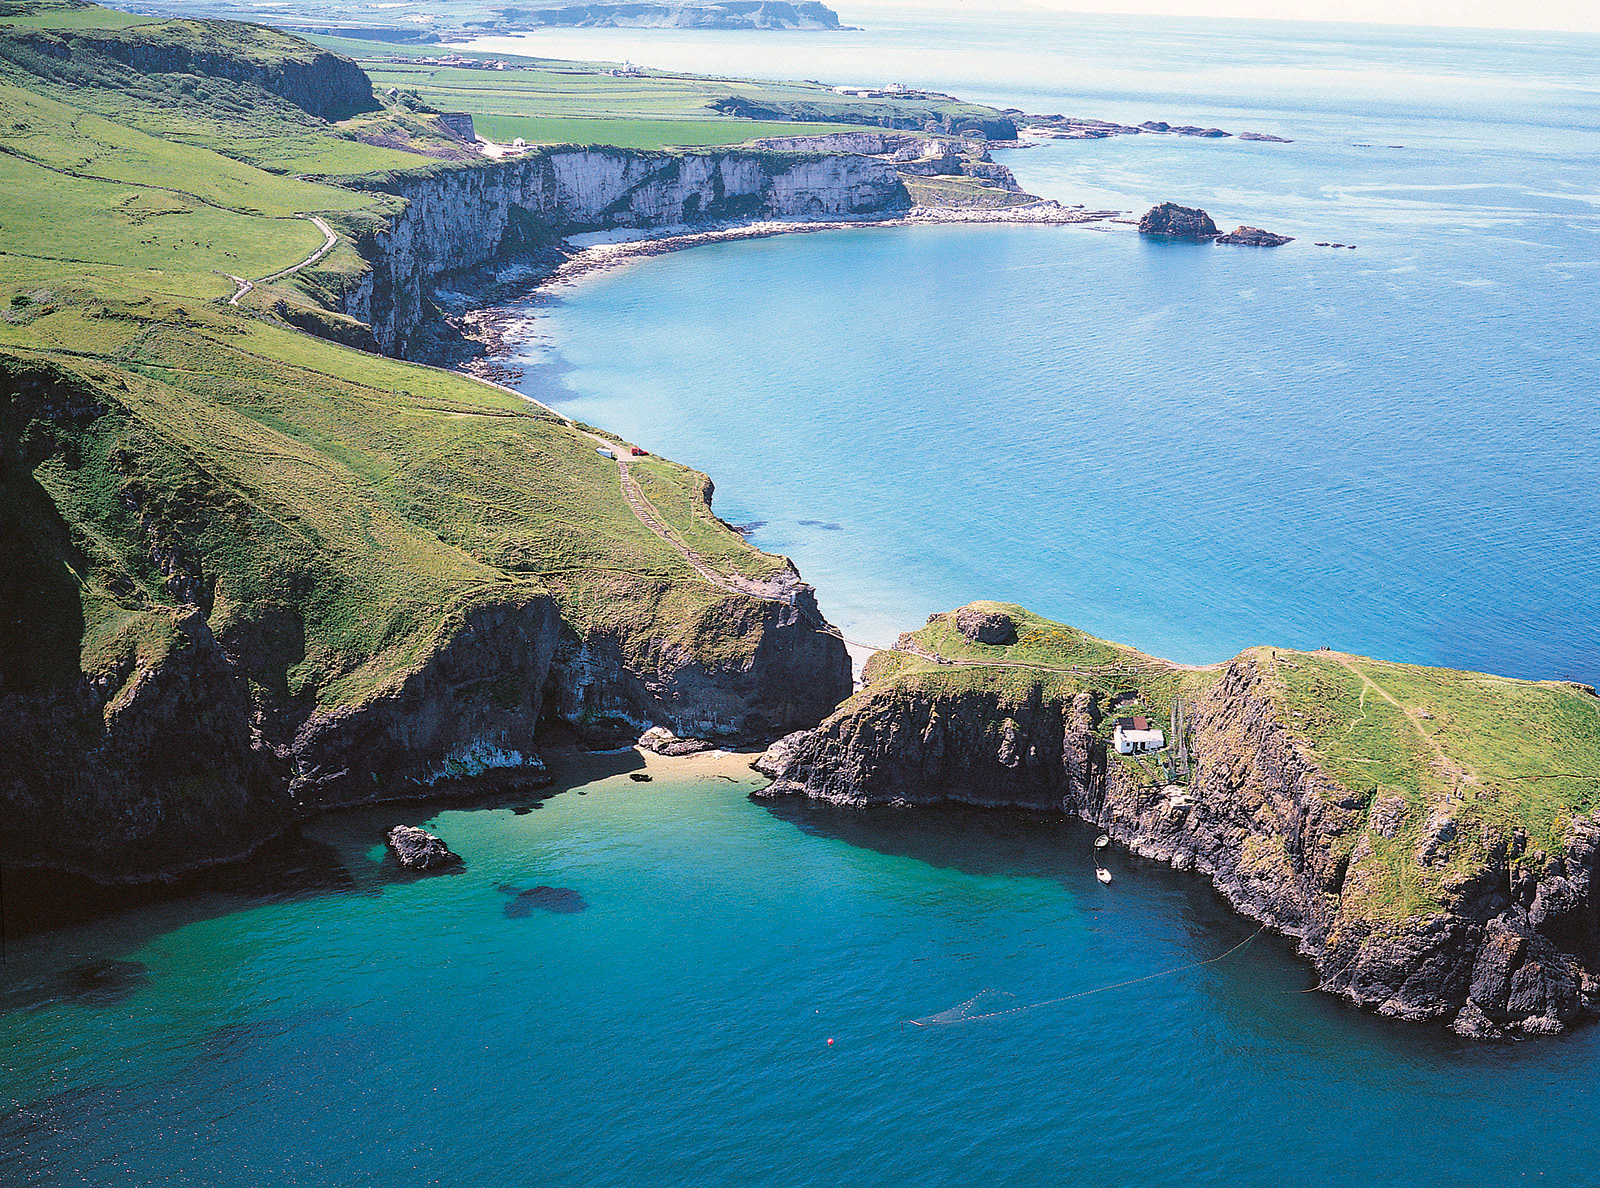 Carrick-a-Rede Aerial View